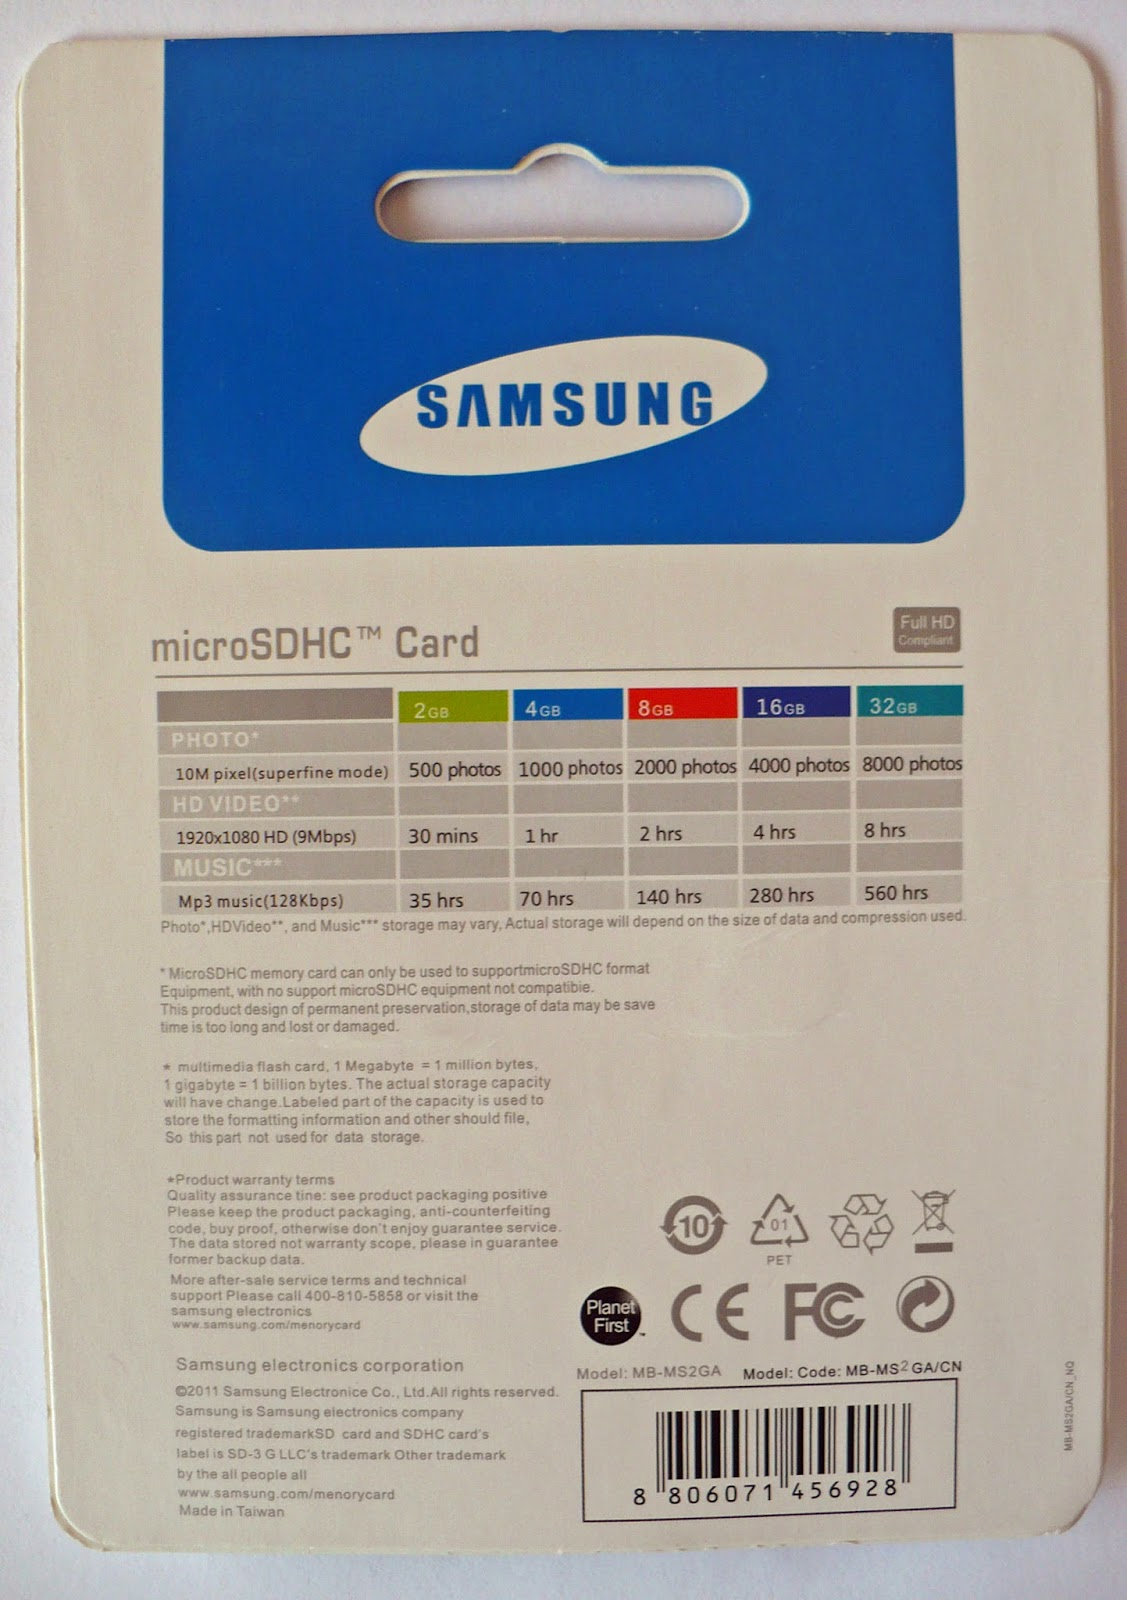 Fake Electronics Samsung 64gb Microsd Card Micro Sd 64 Gb Pro With Adapter Typos Fomat Instead Of Format Menorycard Memorycard